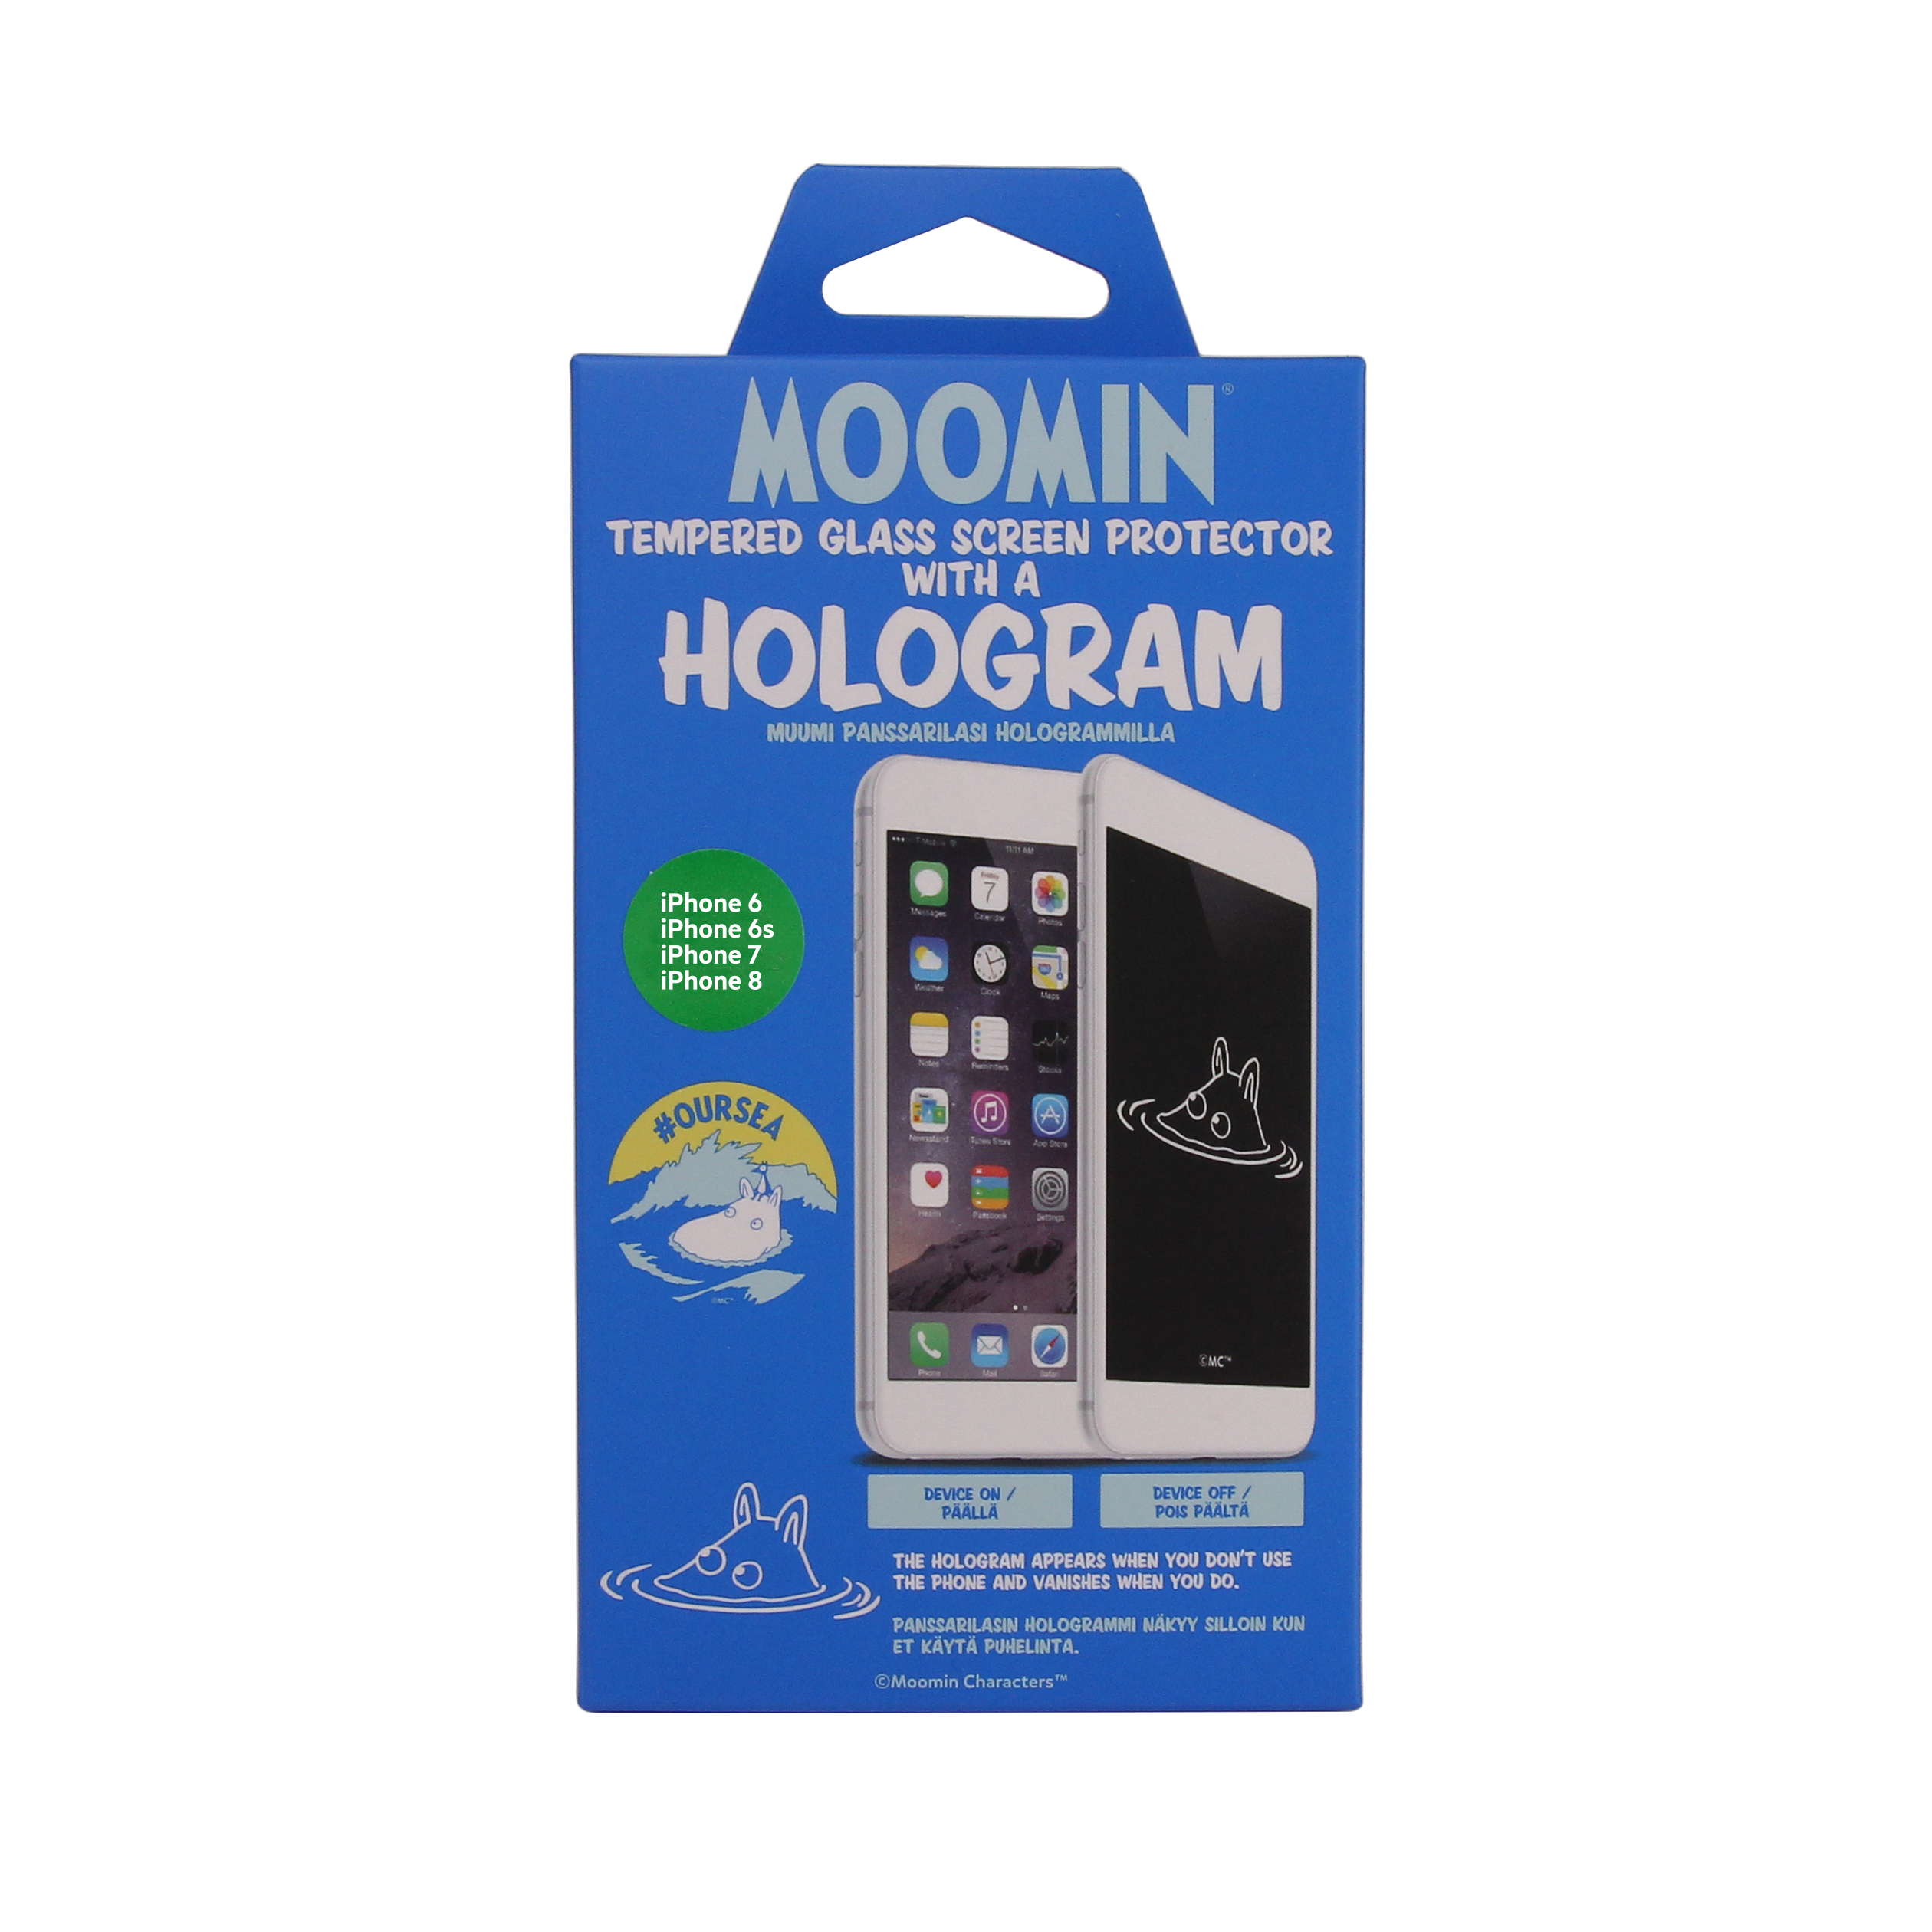 Moomintroll holographic screen protector